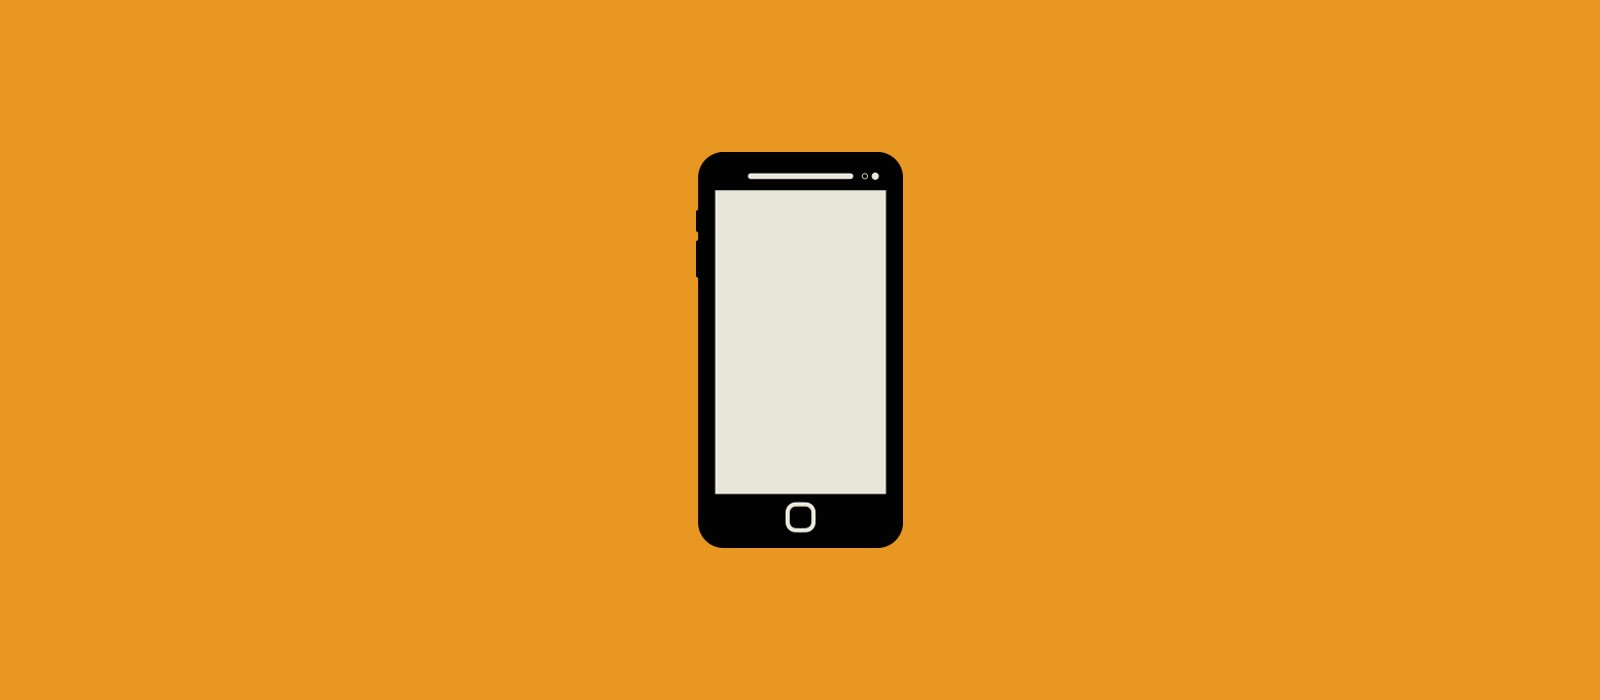 5 Simple Ways To Decrease Your Screen Time